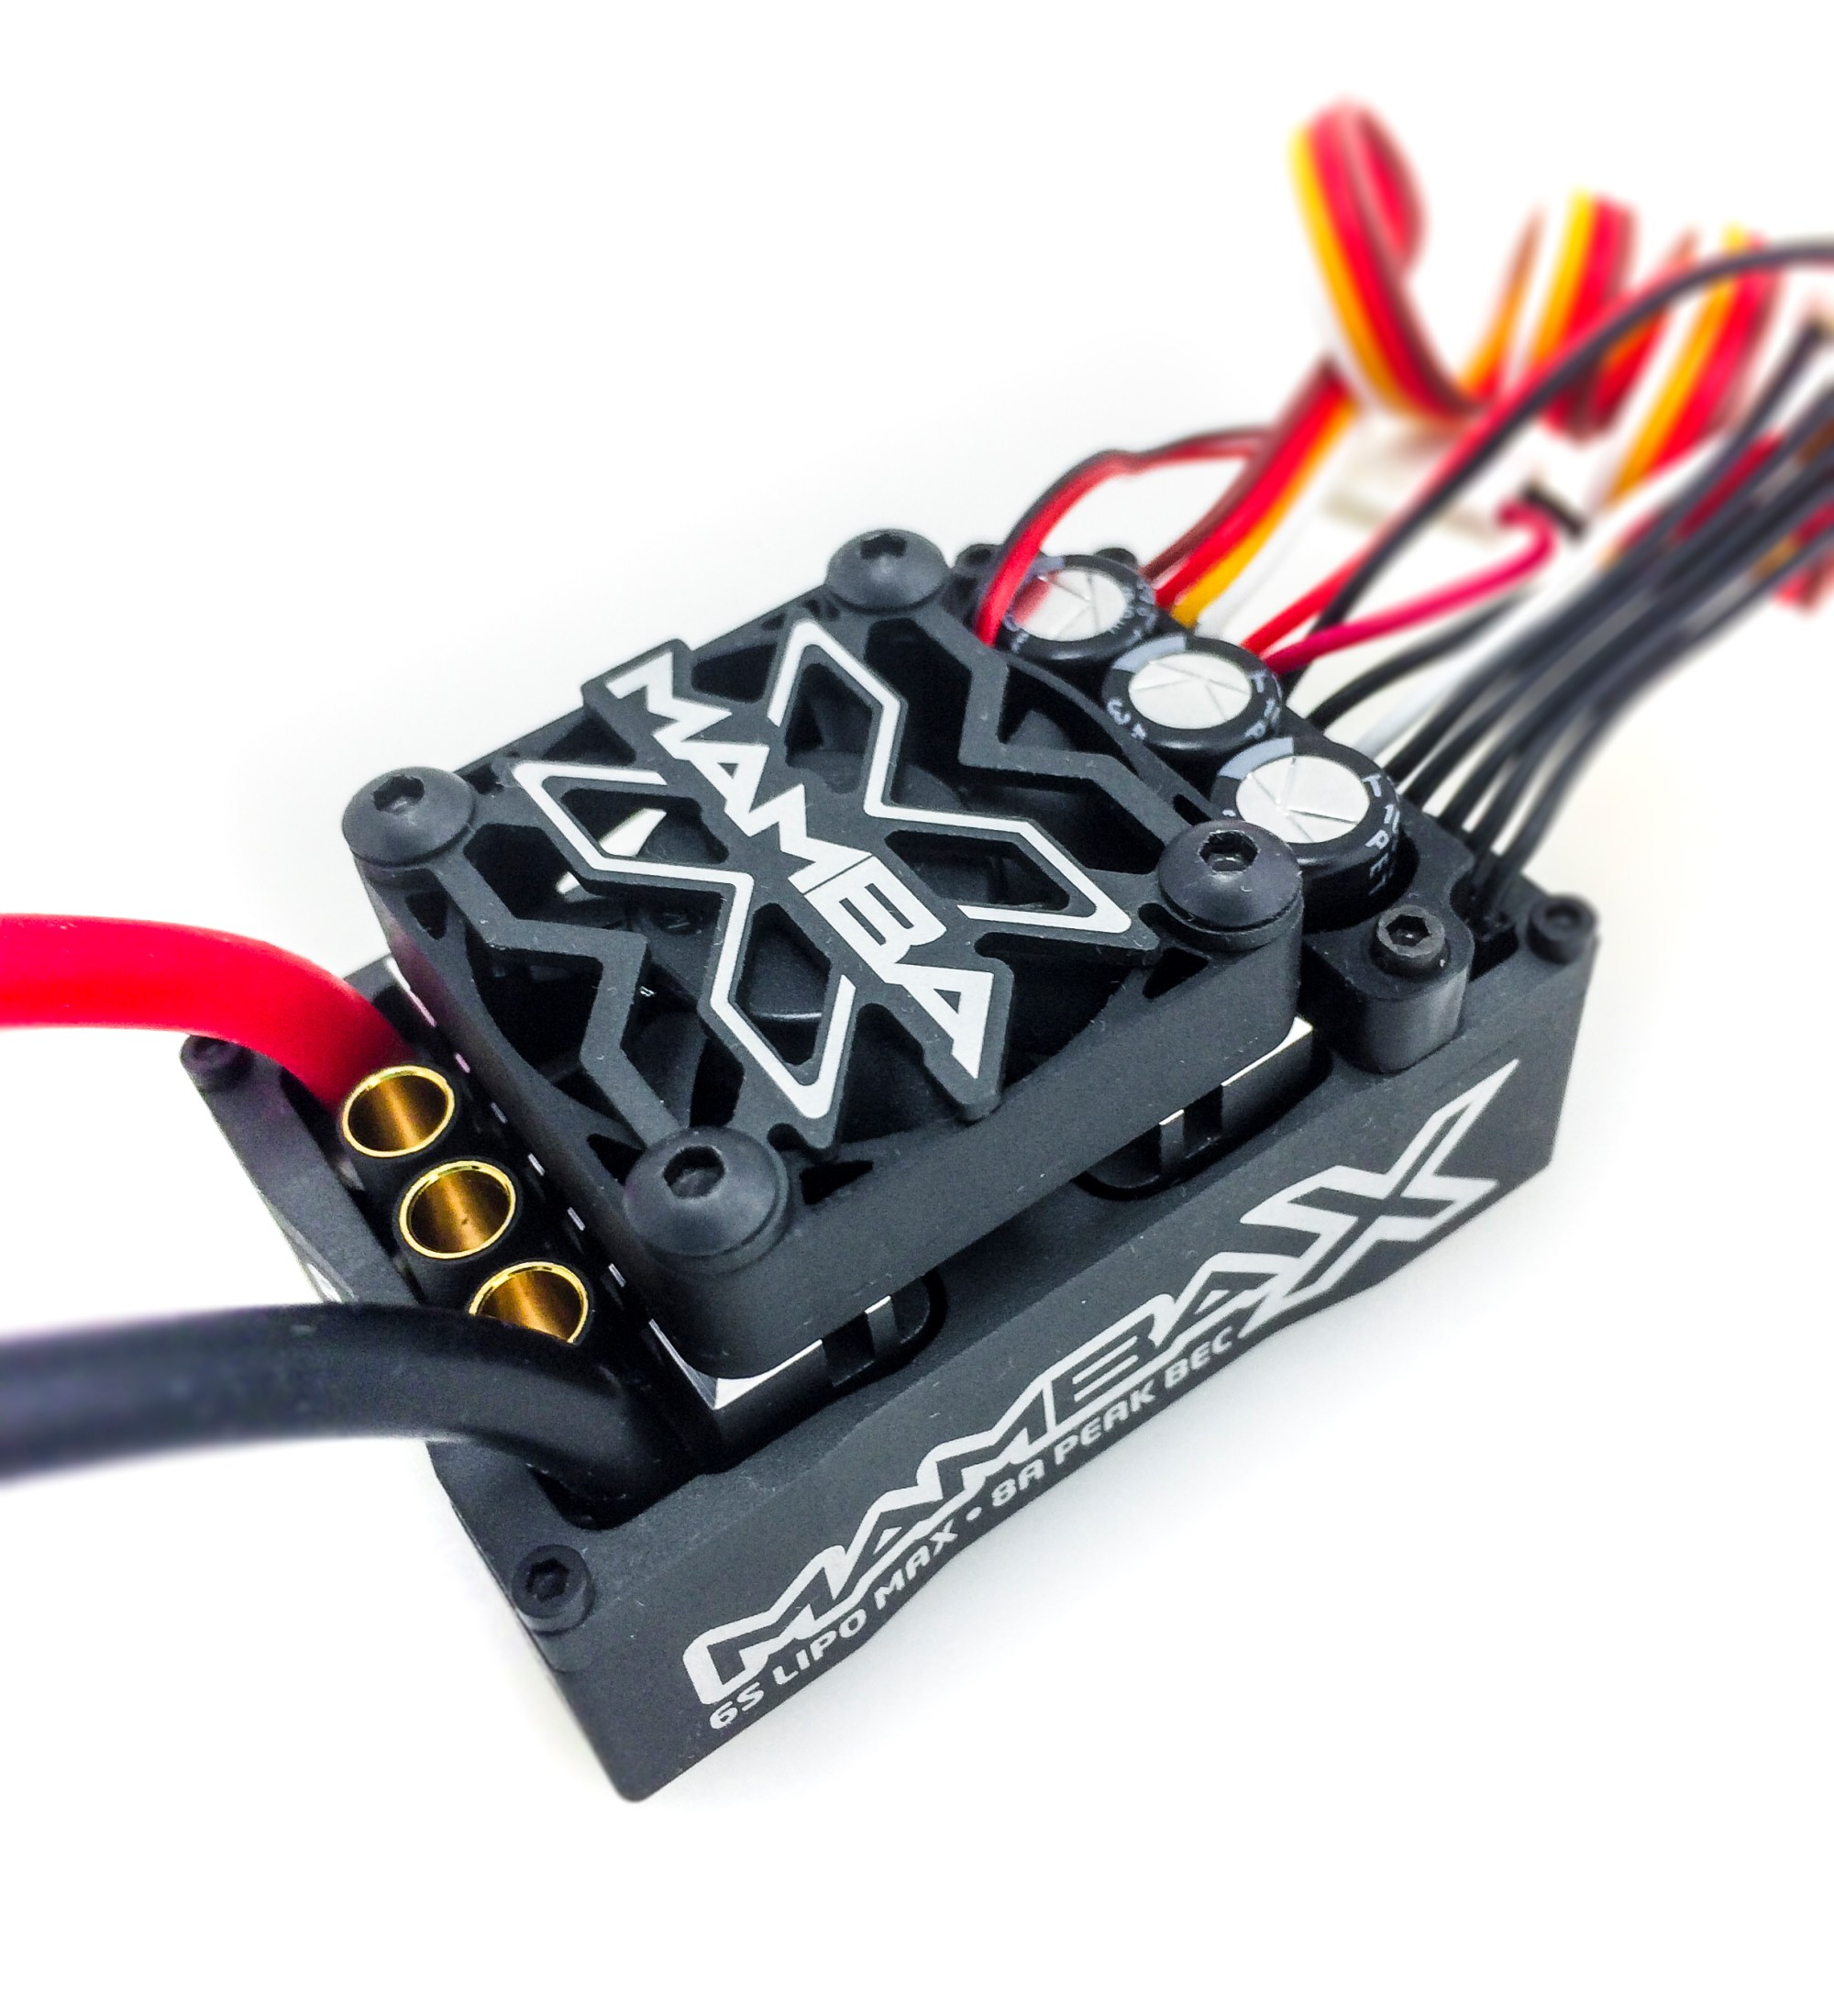 hight resolution of 1 10th scale products castle homepage north american edition electrical wiring harness with eicv escv